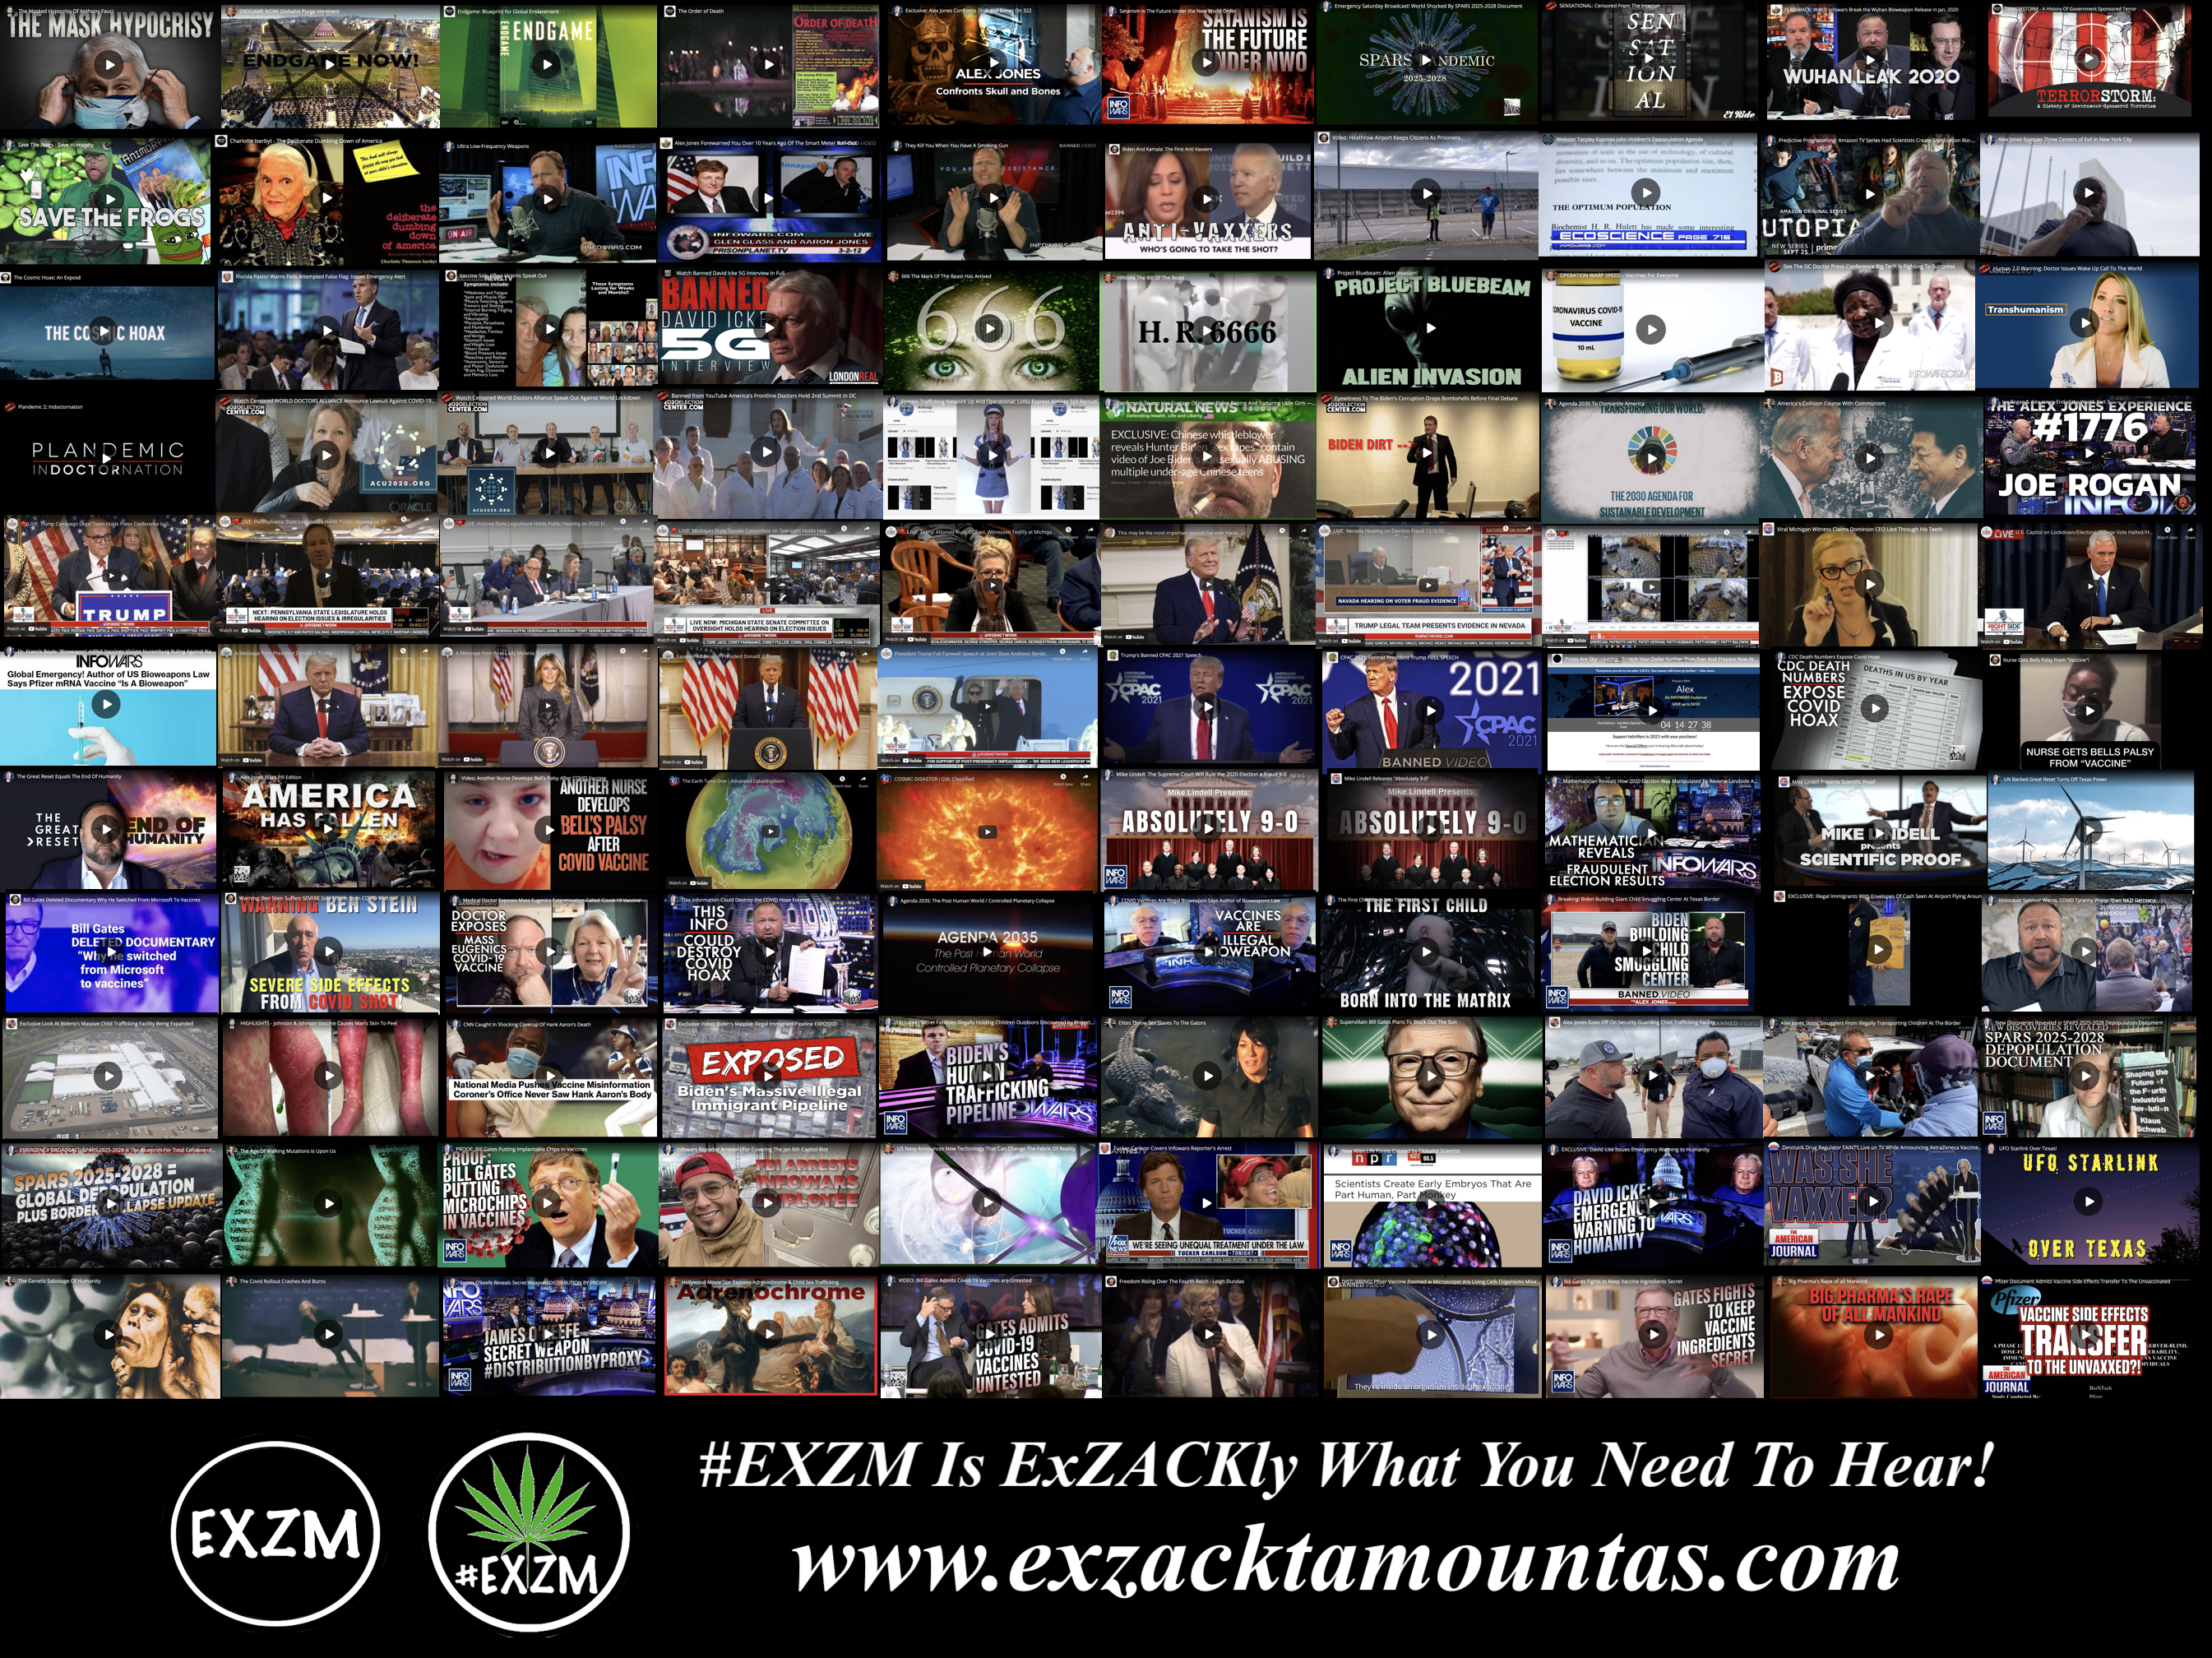 MOST WATCHED VIDEOS ON BANNED VIDEO DEEP STATE GLOBALISTS DEPOPULATION ELECTION FRAUD AND MUCH MORE EXZM Zack Mount July 18th 2021